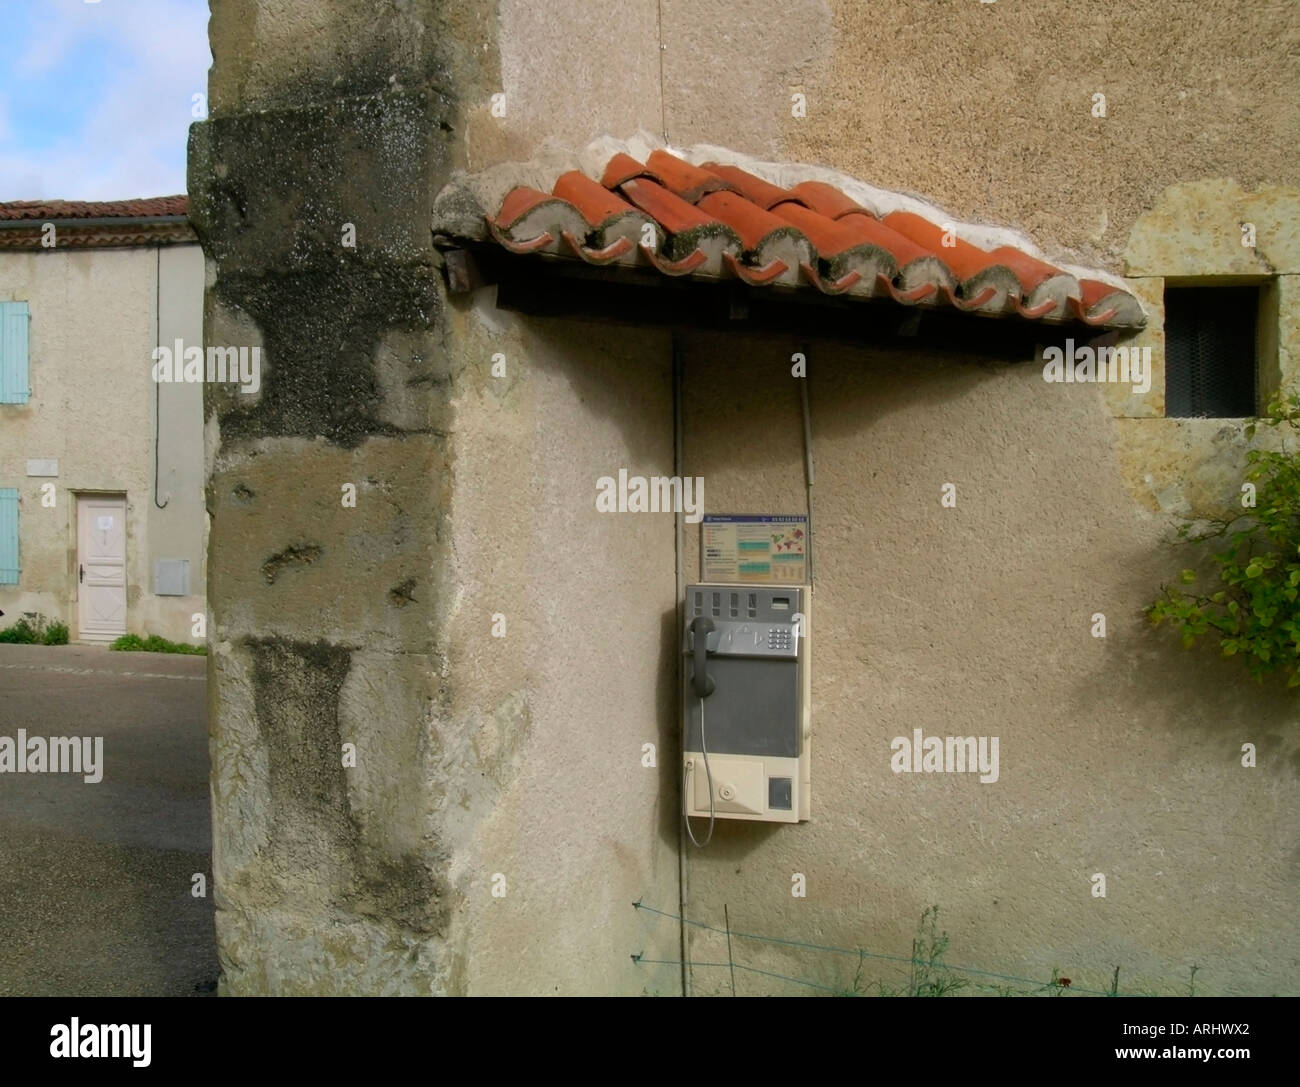 public telephone under a little roof made of tiles at an old house wall in southern France - Stock Image